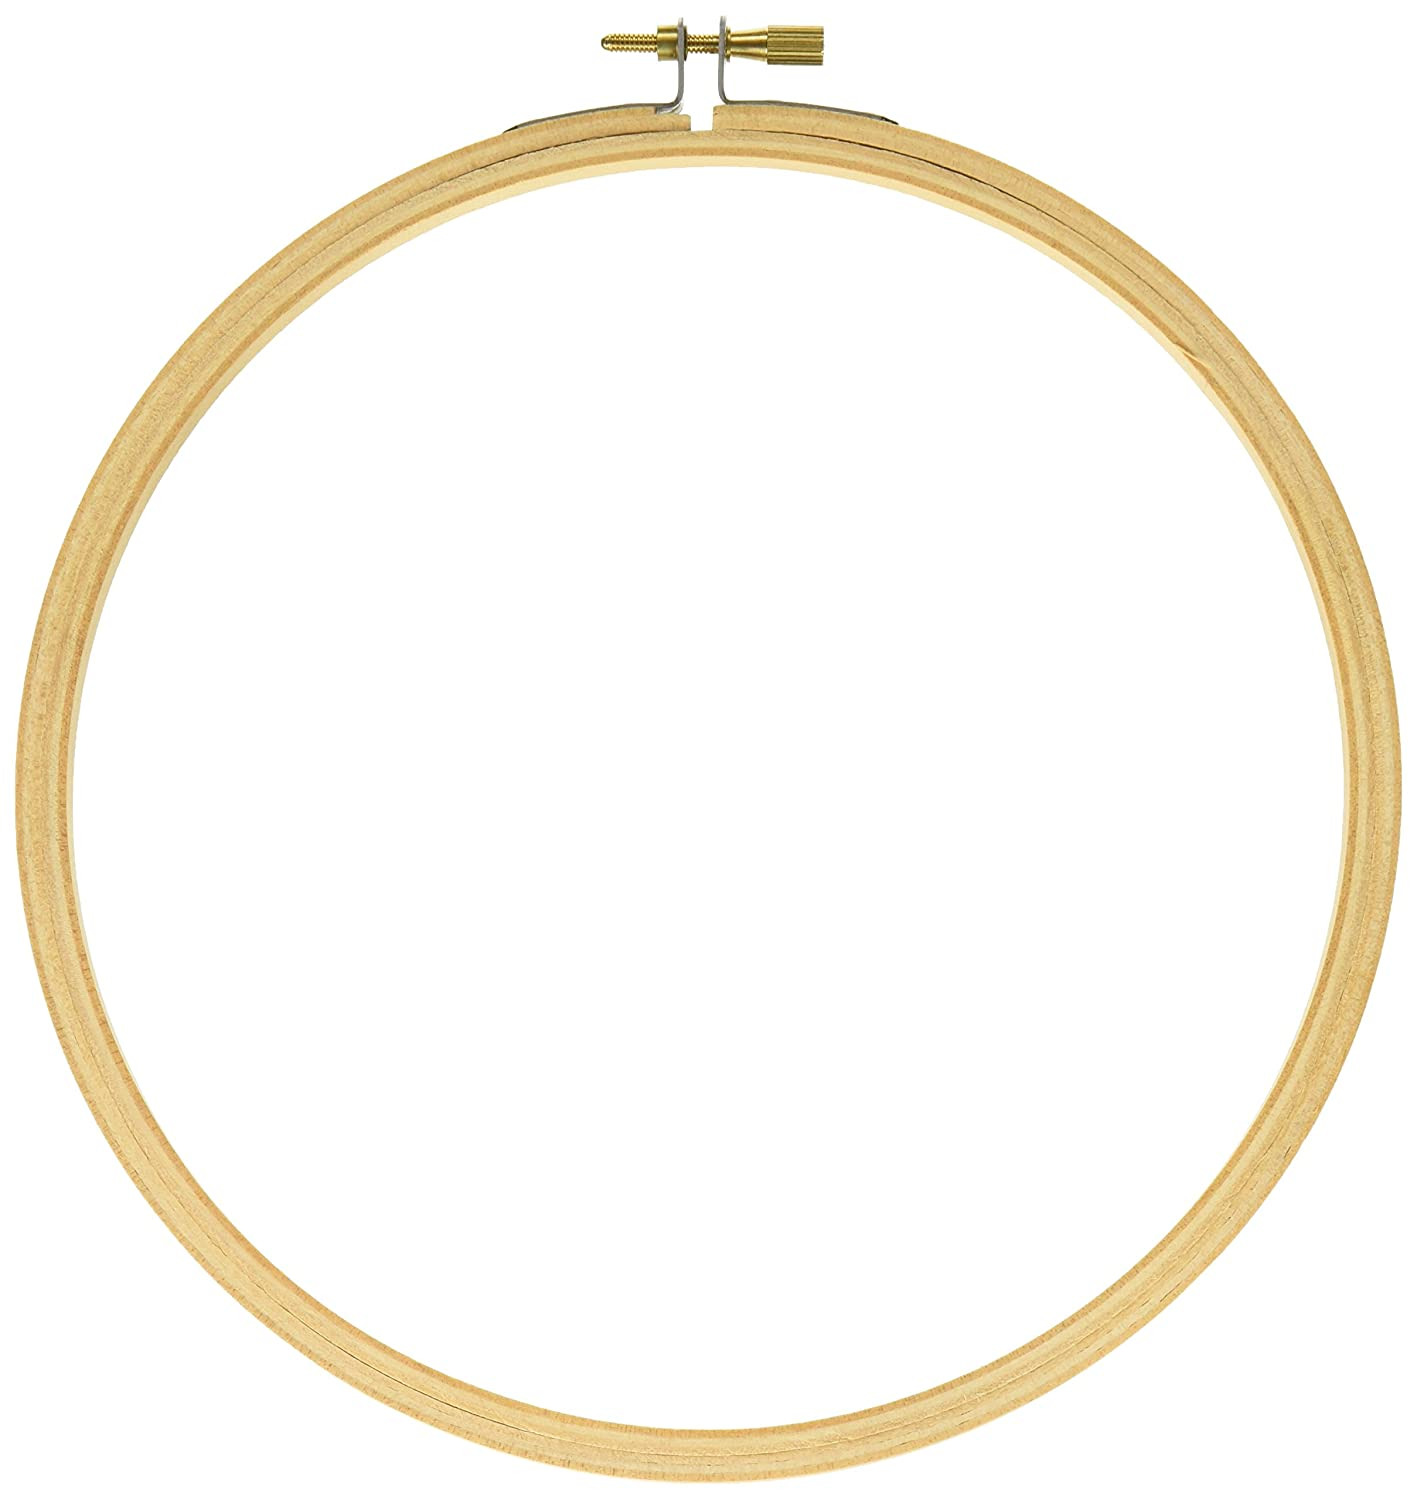 9-Inch Darice Wood Embroidery Hoops